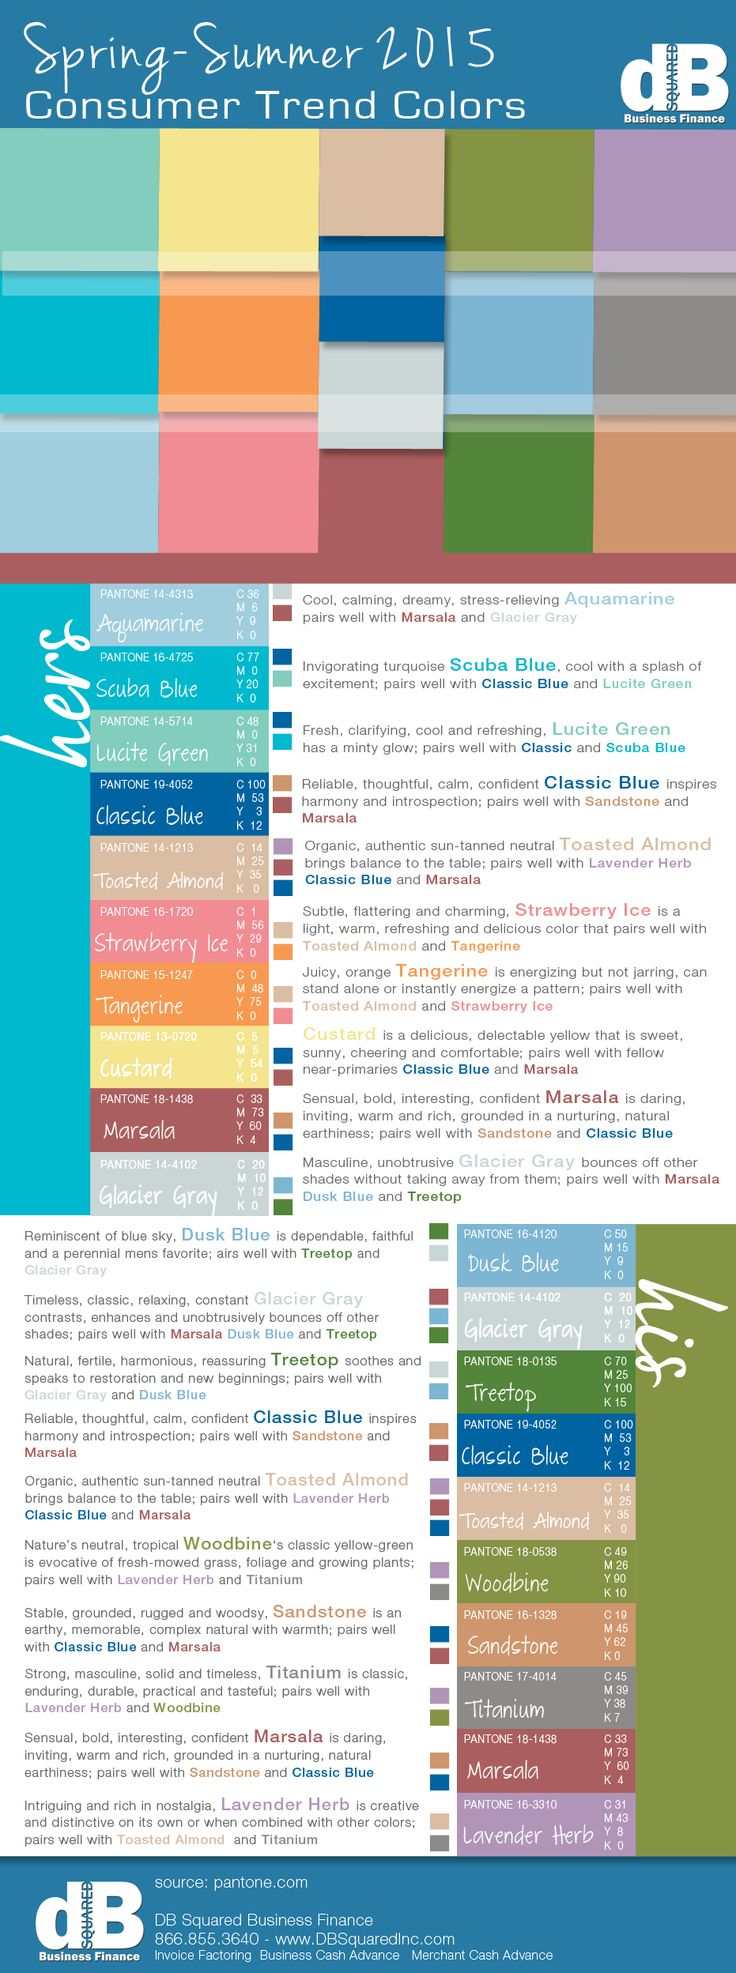 Color trends in 2015 - Pantone Trend Colors 2015 Infographic Housewares Interior And Others